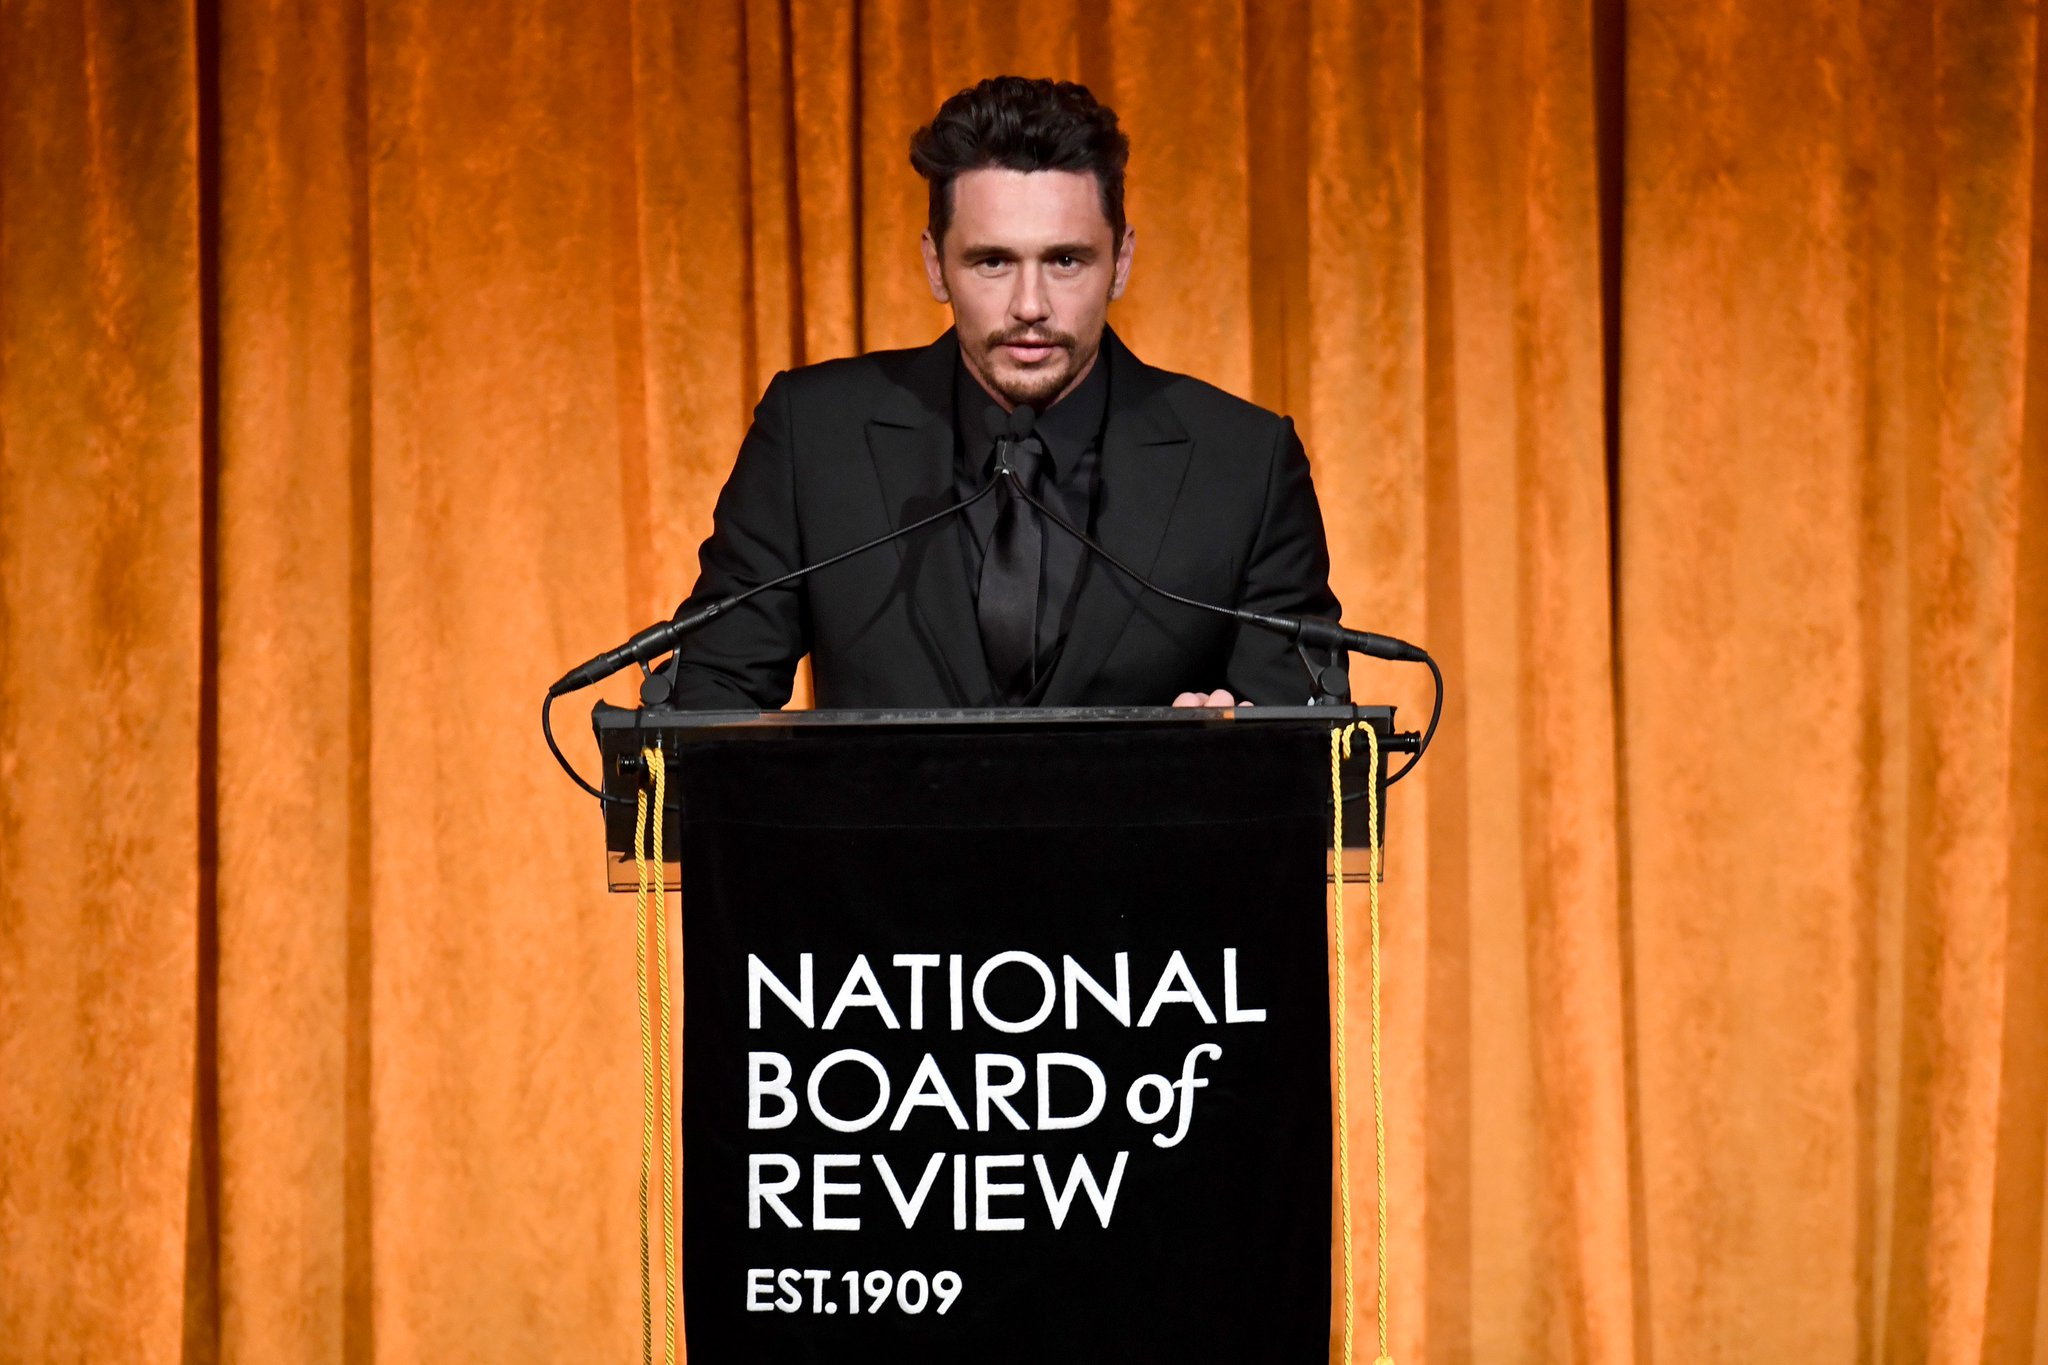 James Franco accused of sexual misconduct by 5 women. https://t.co/WLMeXJ6WJJ https://t.co/nKEZKb5yxx